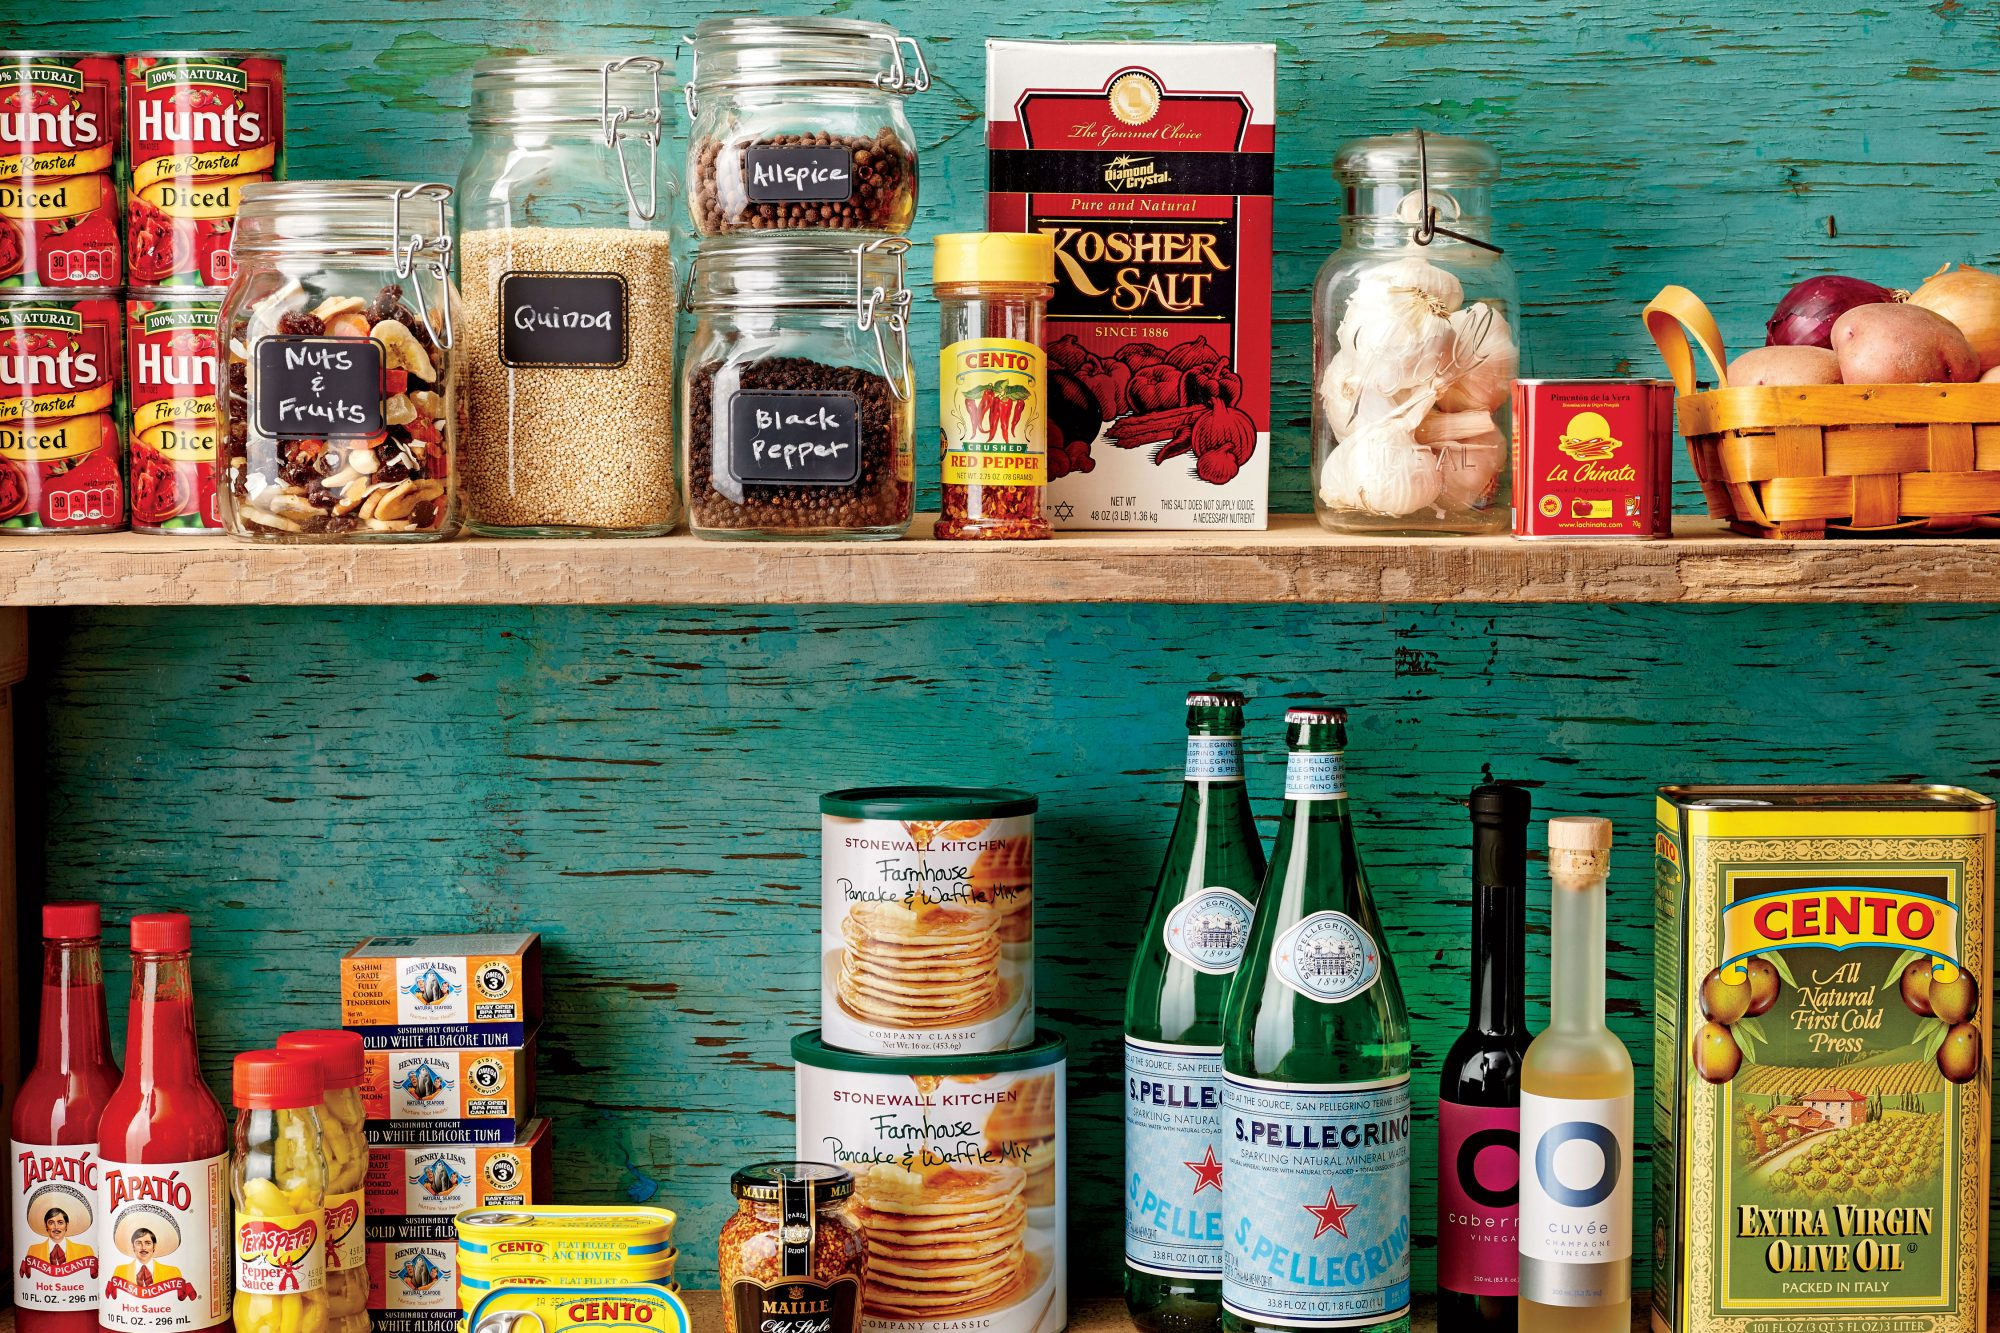 Chef Barton Seaver throws open his cabinet doors to reveal these beach house essentials.